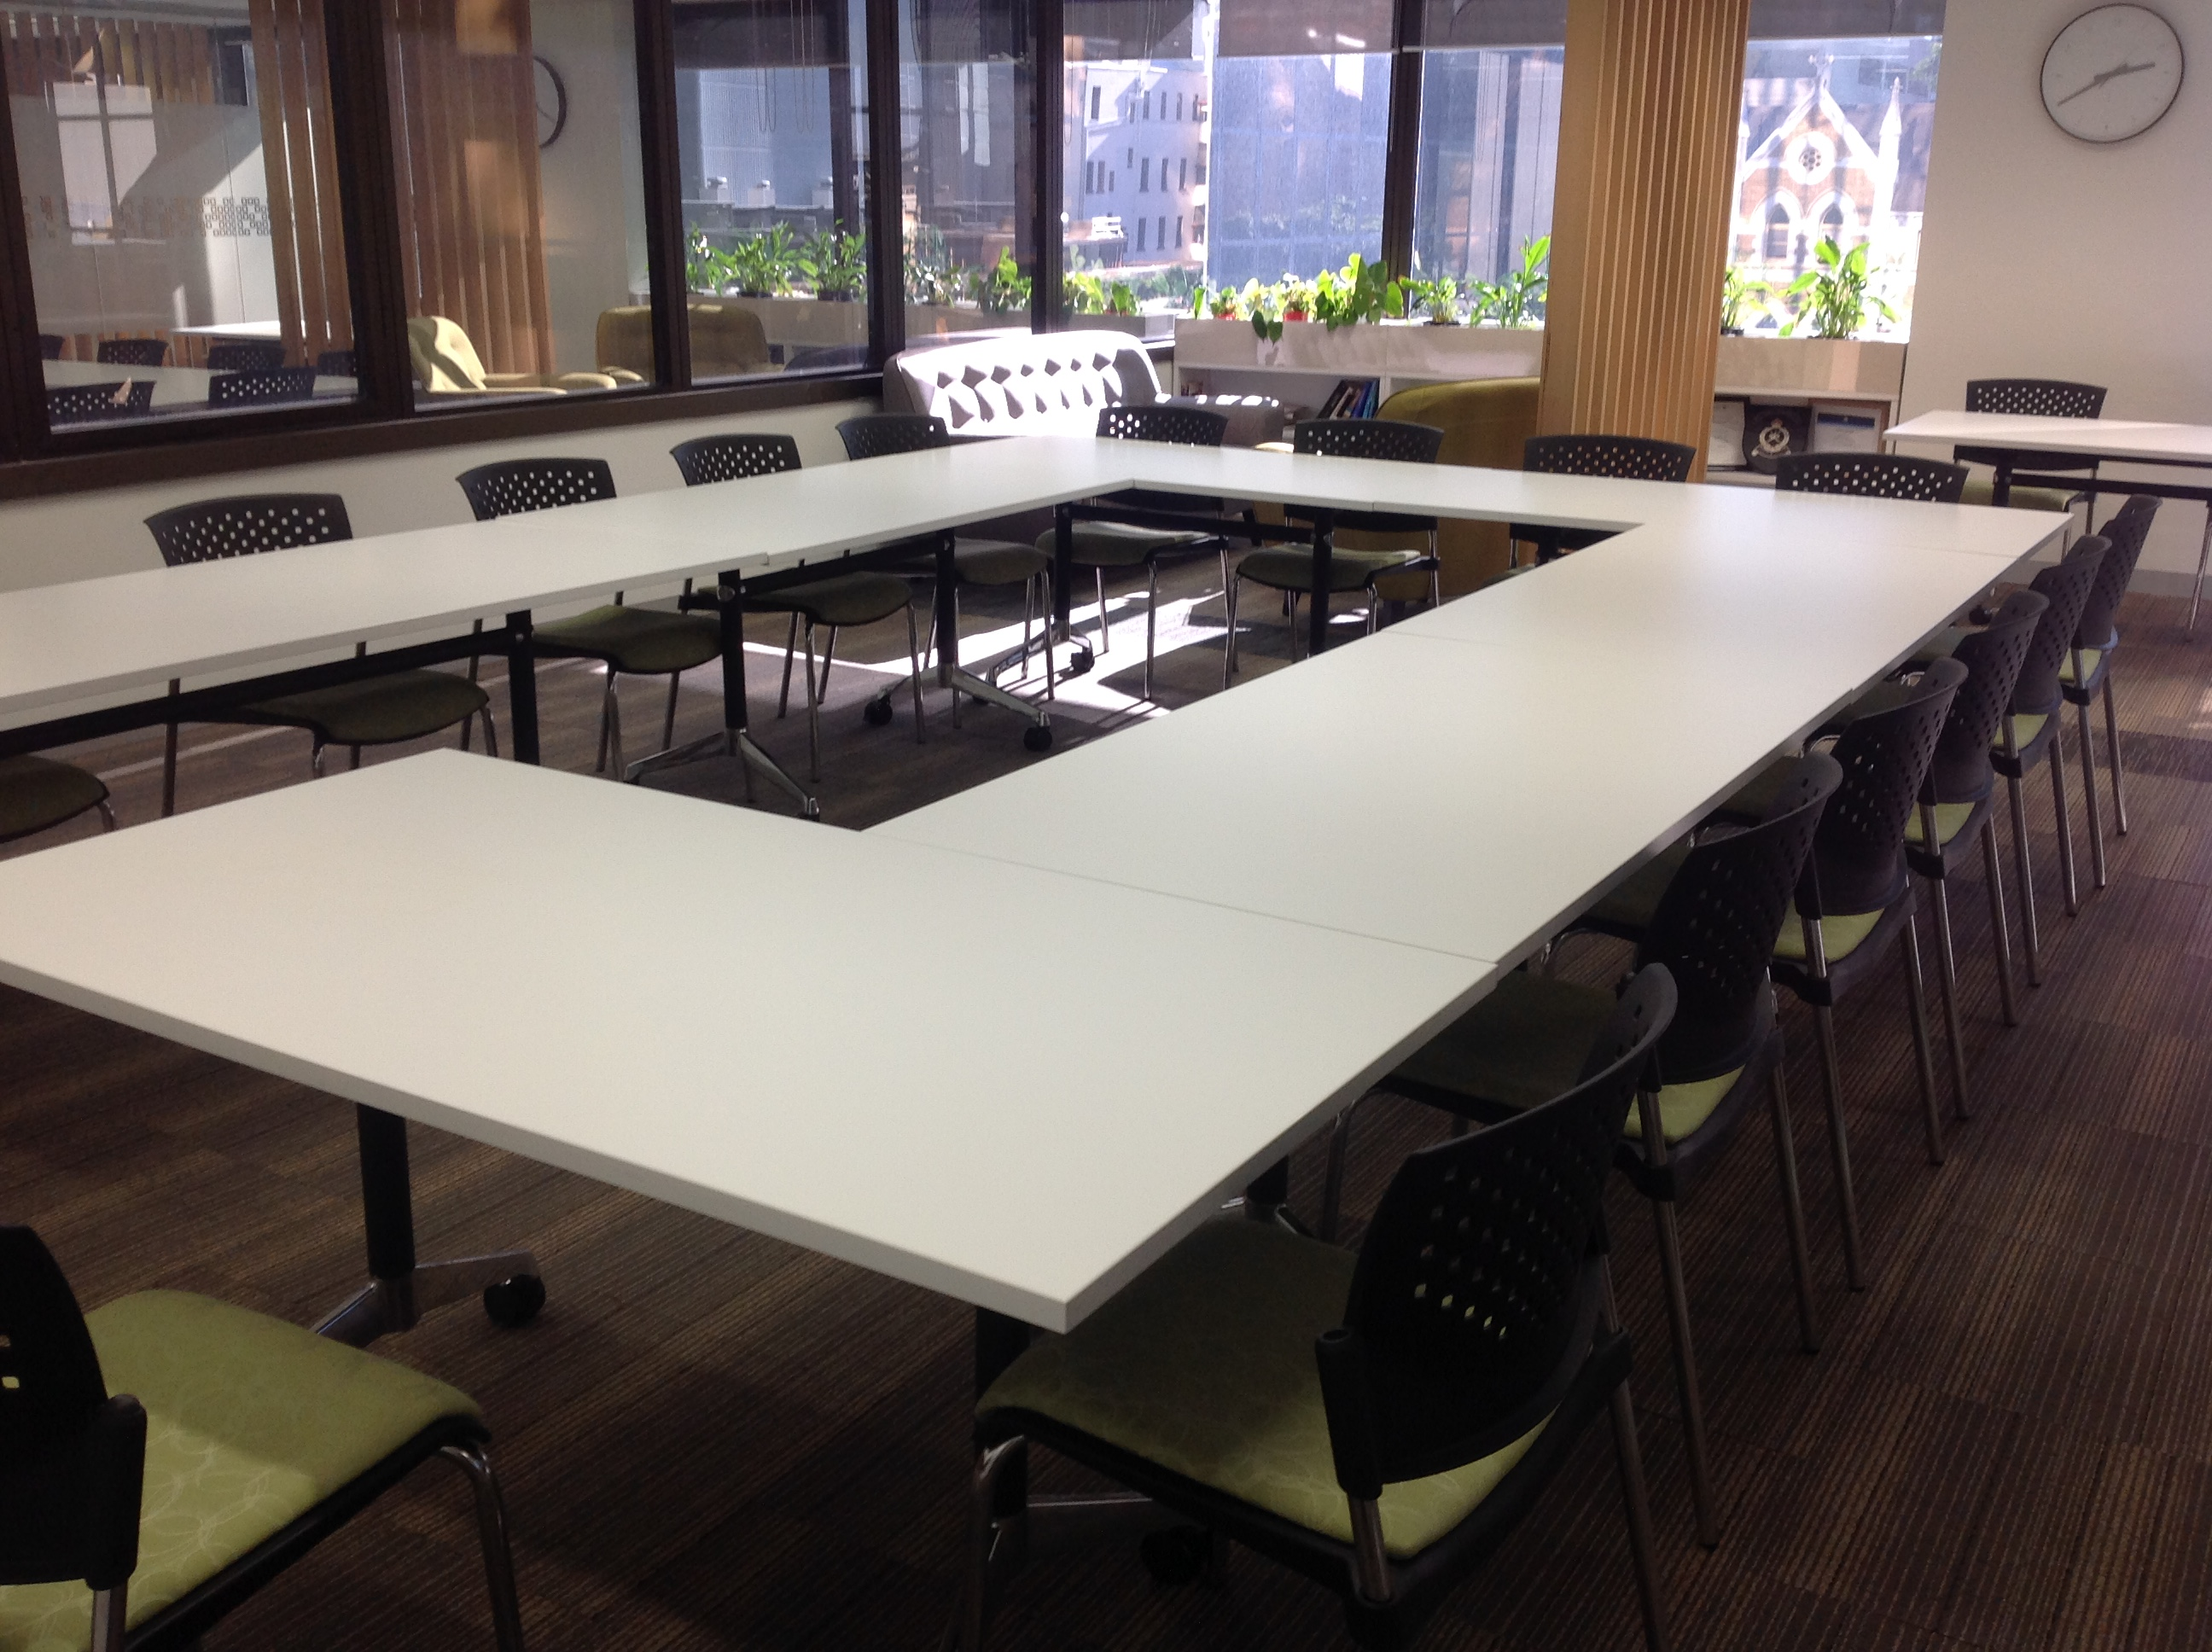 Training room hire Brisbane_U shape setup_15 people